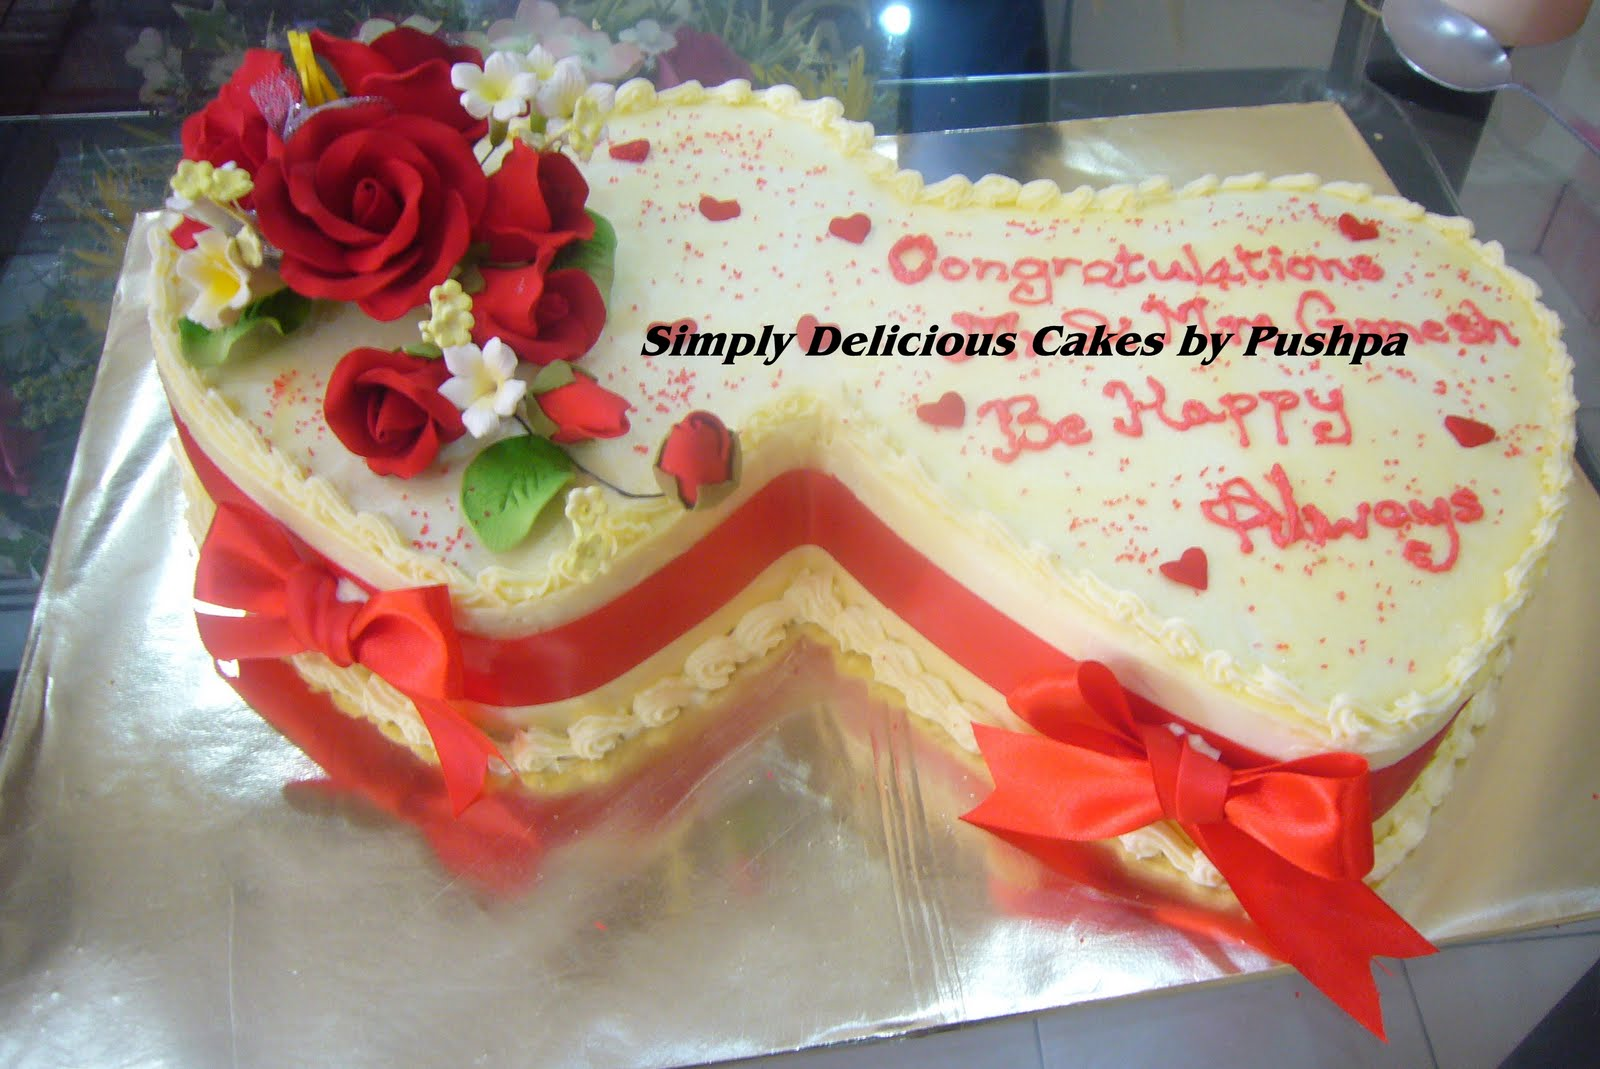 SIMPLY DELICIOUS CAKES: Gift a Cake